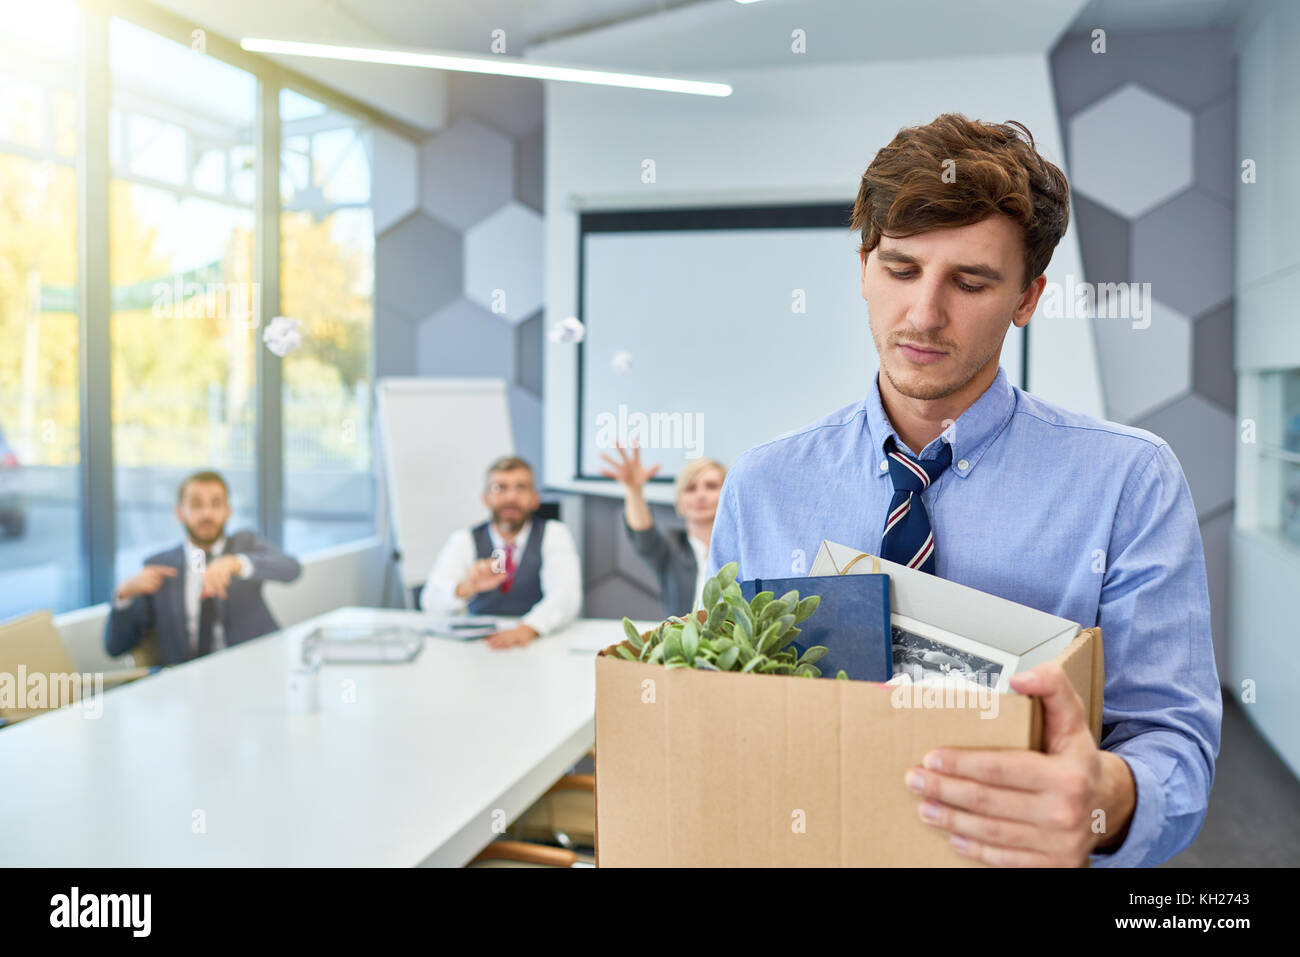 Portrait of sad young man holding box of personal belongings being fired from work in business company, copy space - Stock Image